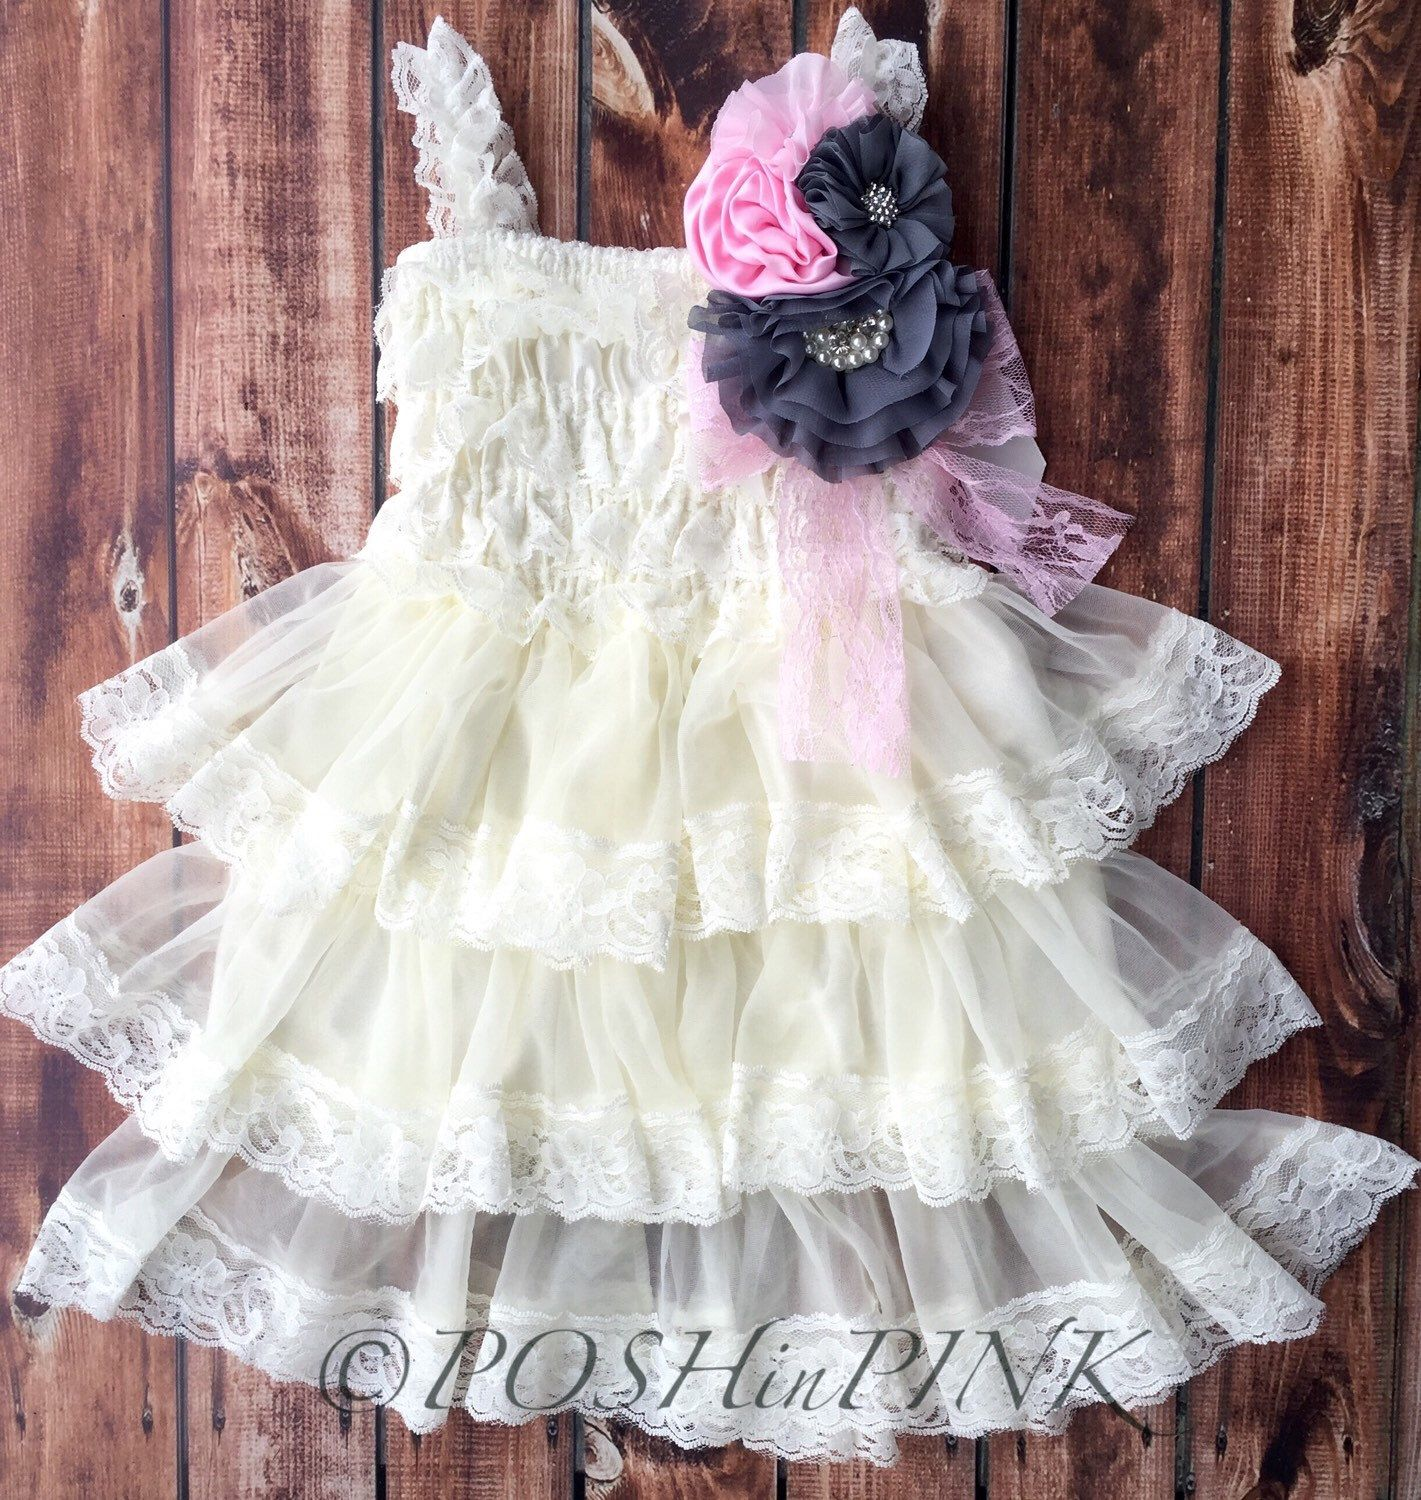 Rustic wedding flower girl dresses  A personal favorite from my Etsy shop sylisting